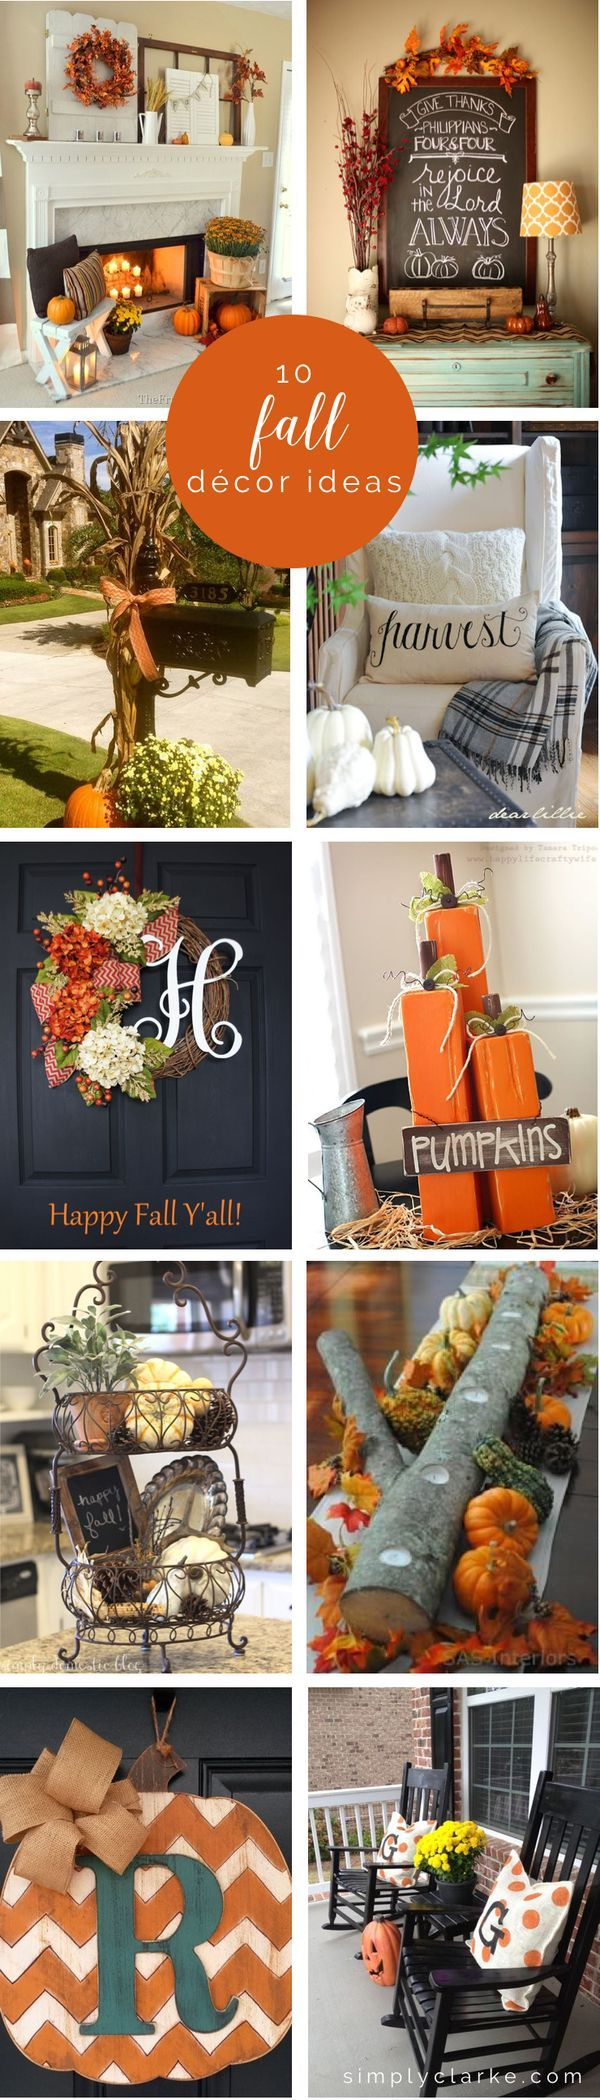 10 fall decor ideas - Fall House Decorations